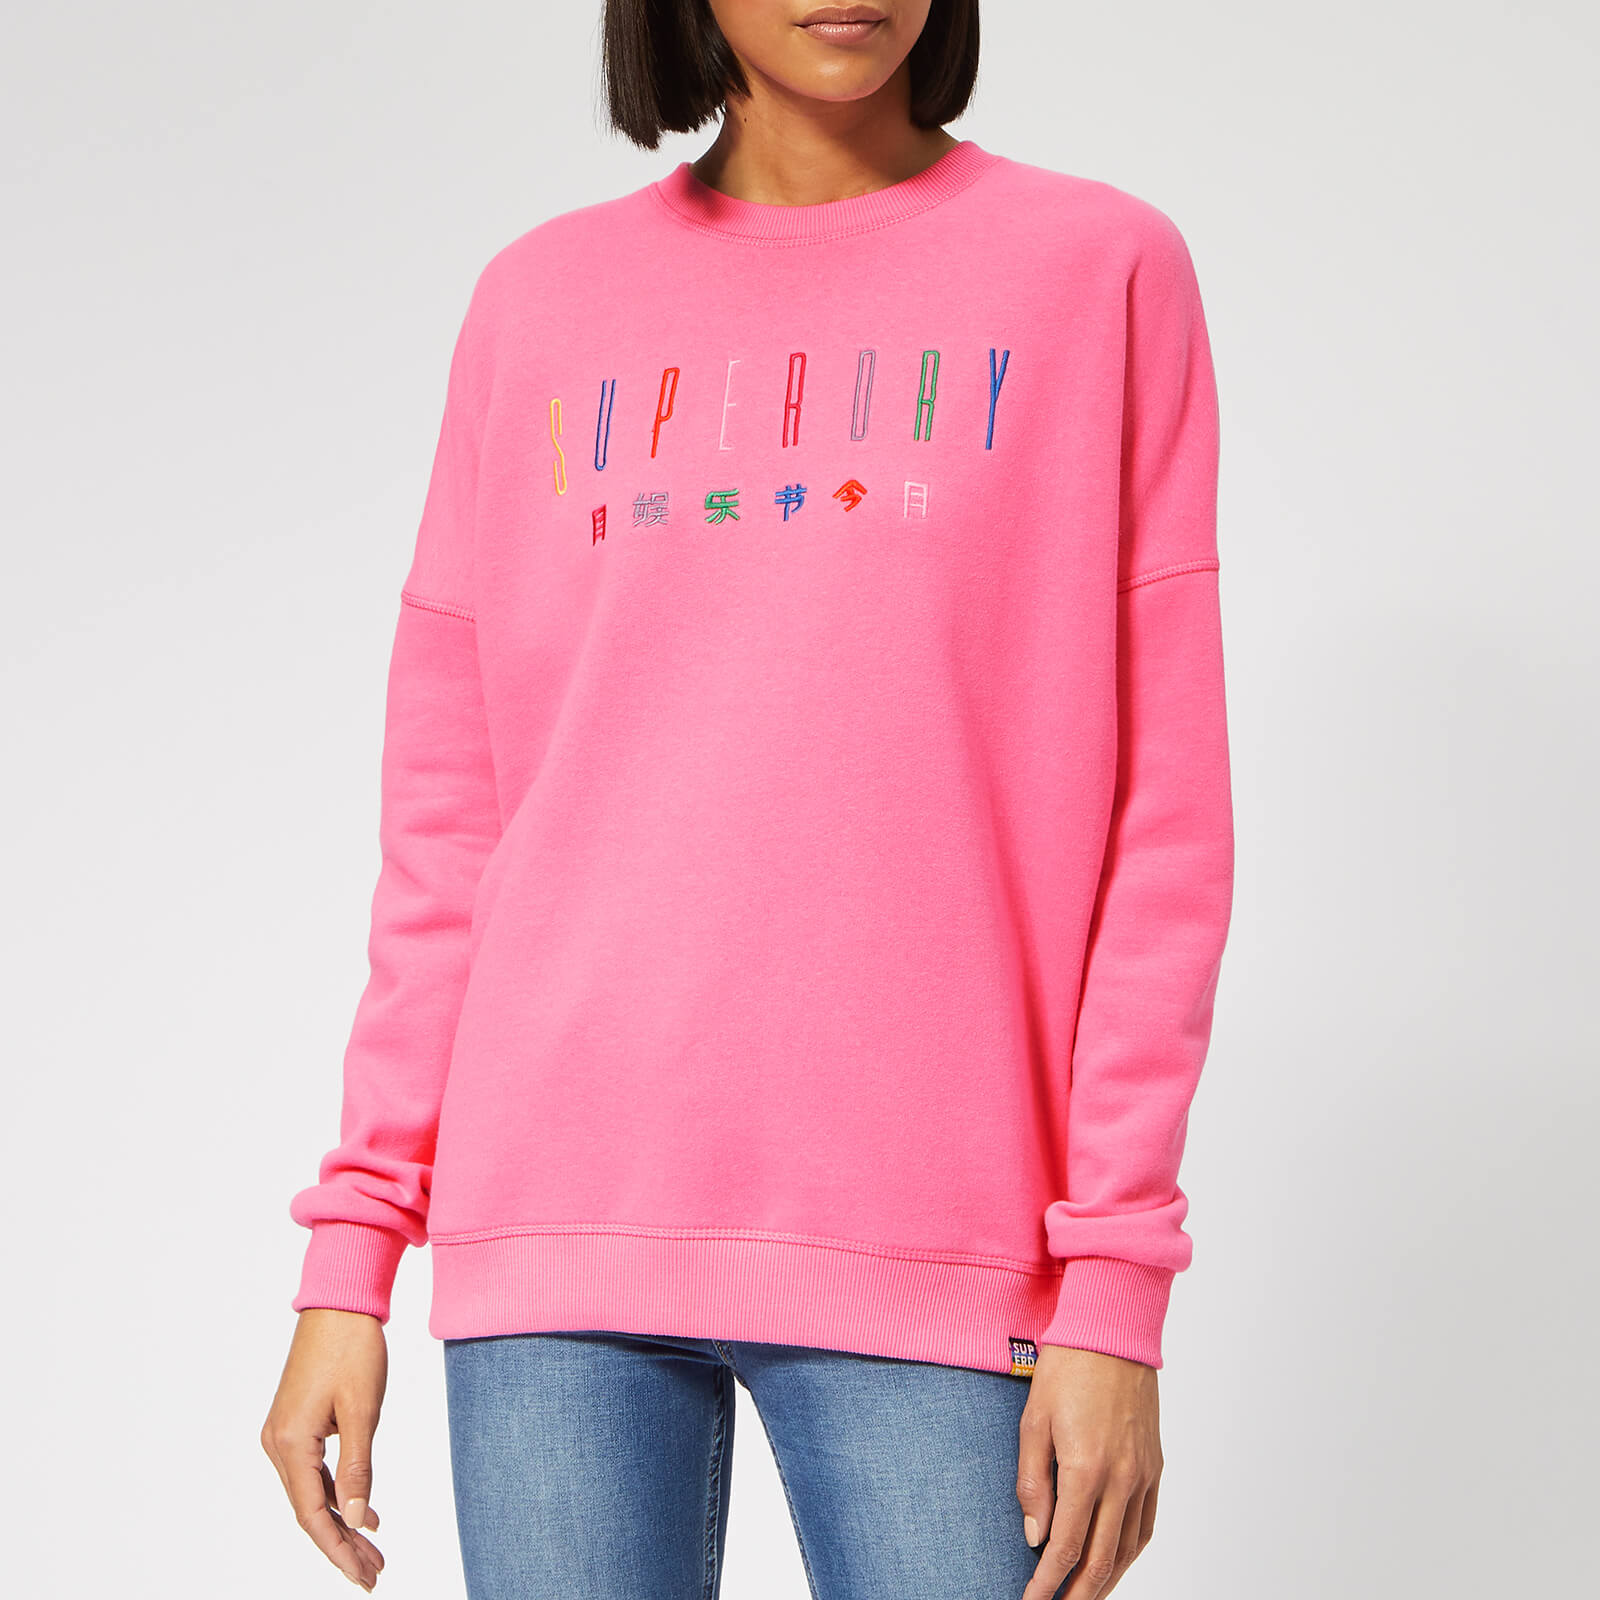 Superdry Women's Carly Carnival Embroidered Crew Sweatshirt Active Pink